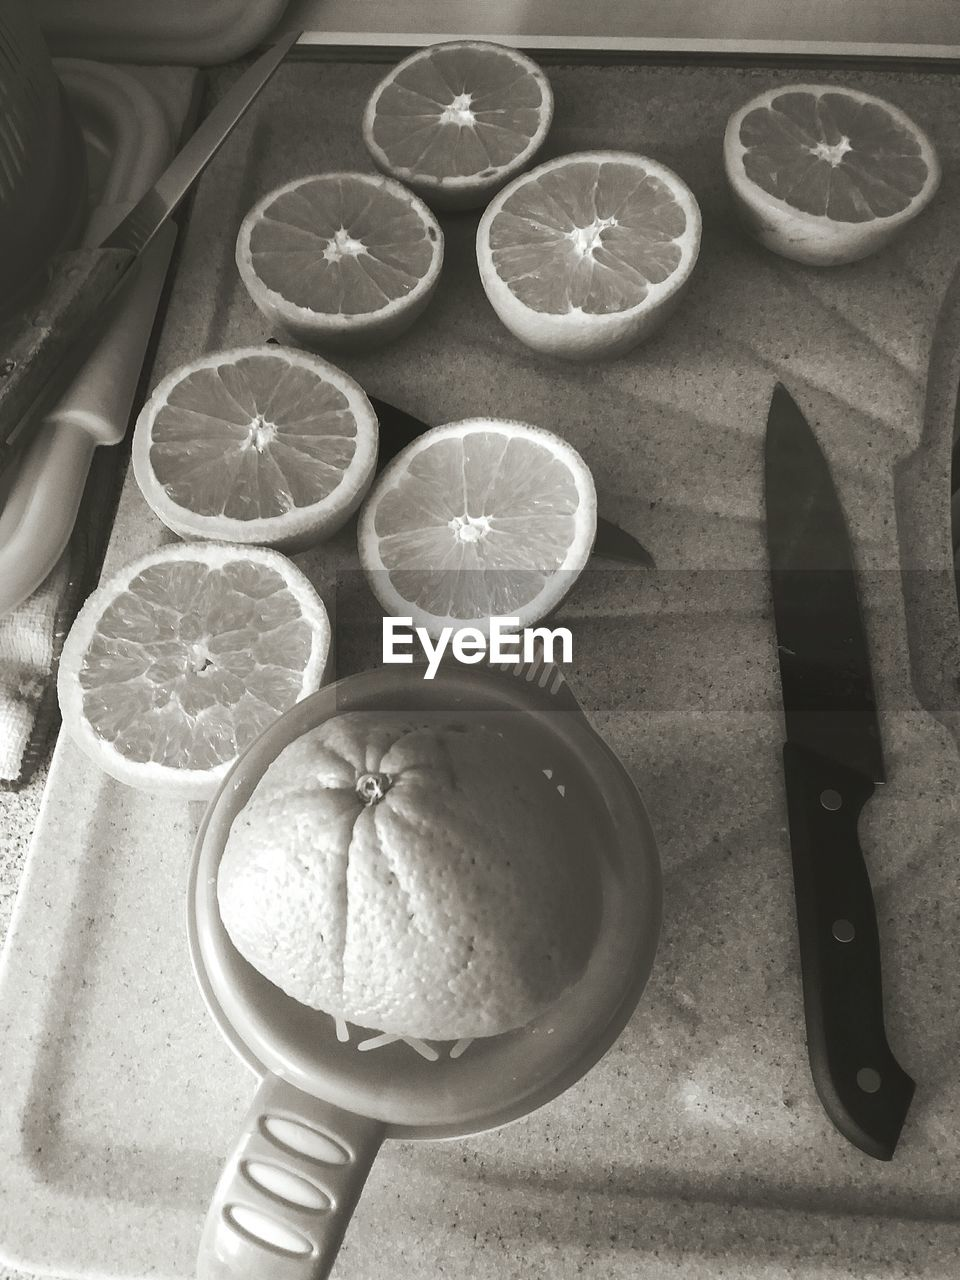 food, food and drink, fruit, citrus fruit, healthy eating, wellbeing, freshness, slice, high angle view, indoors, table, lemon, still life, knife, orange, kitchen knife, orange - fruit, cross section, no people, directly above